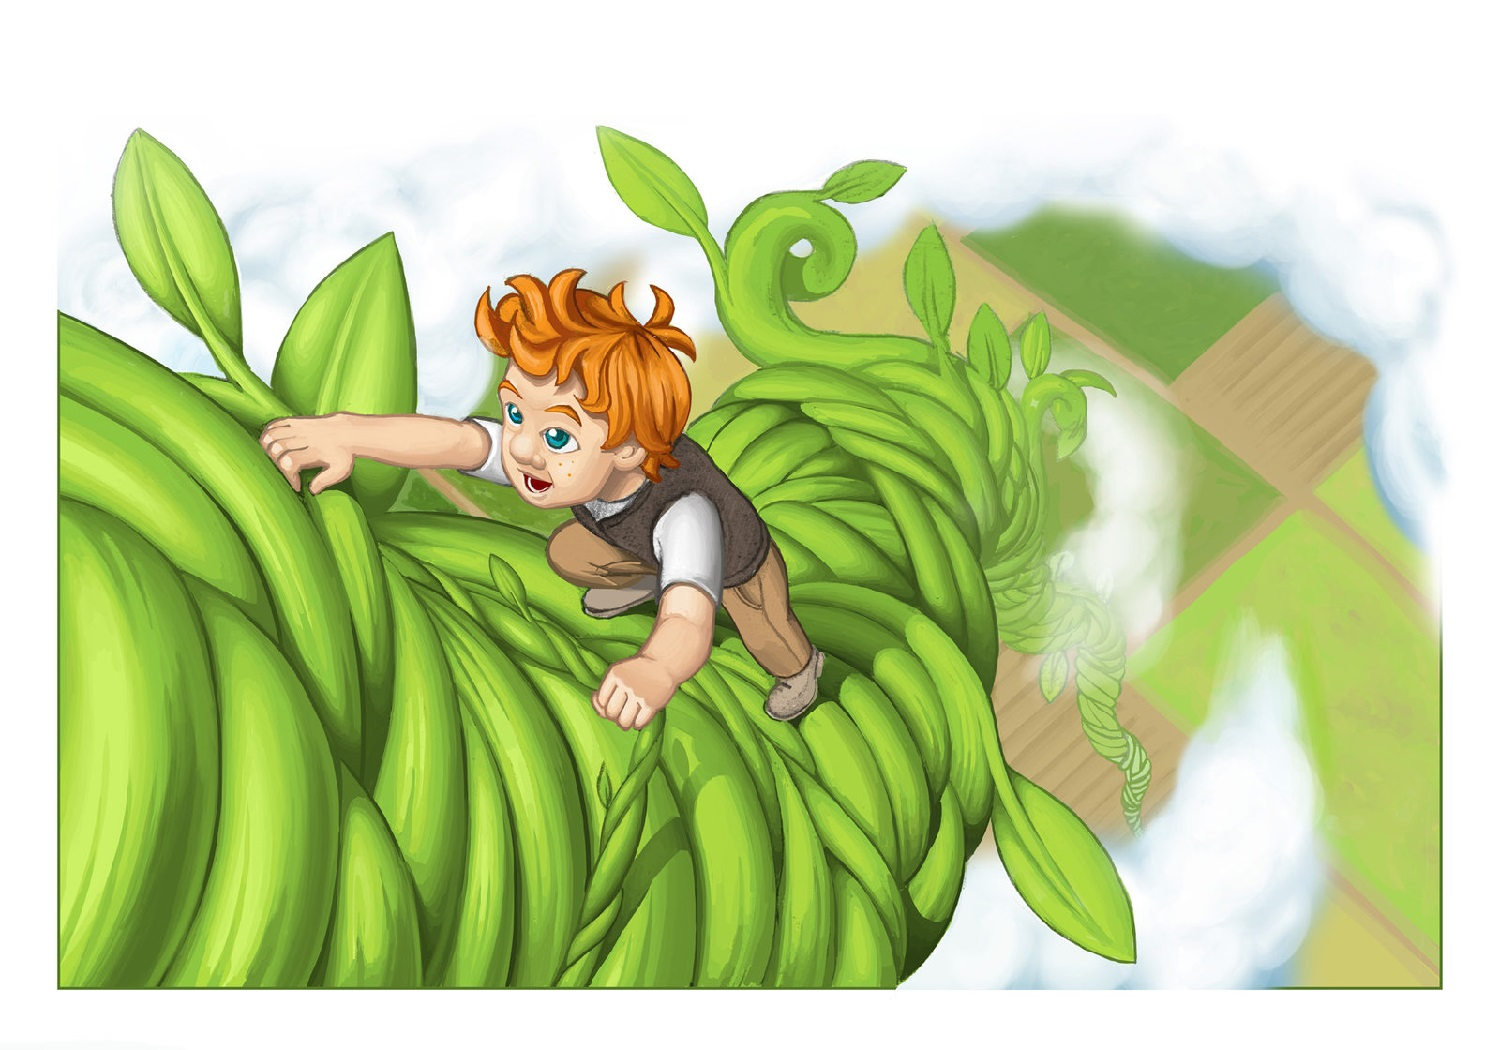 Pictures Of Jack And The Beanstalk